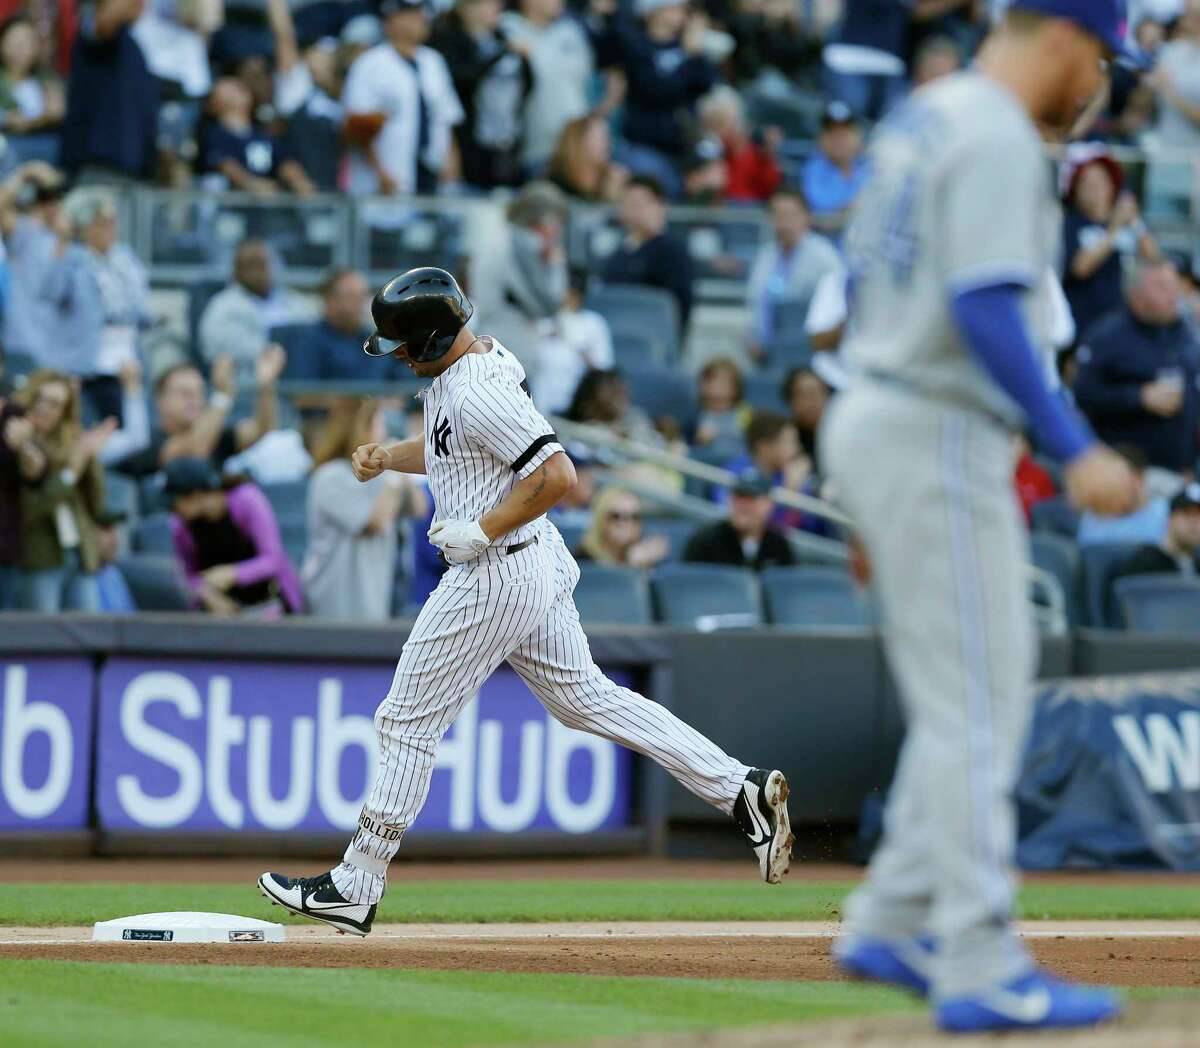 New York Yankees designated hitter Matt Holiday trots past Toronto Blue Jays relief pitcher Danny Barnes after hitting a solo home run during the seventh inning of a baseball game in New York, Sunday, Oct. 1, 2017. (AP Photo/Kathy Willens) ORG XMIT: NYY114